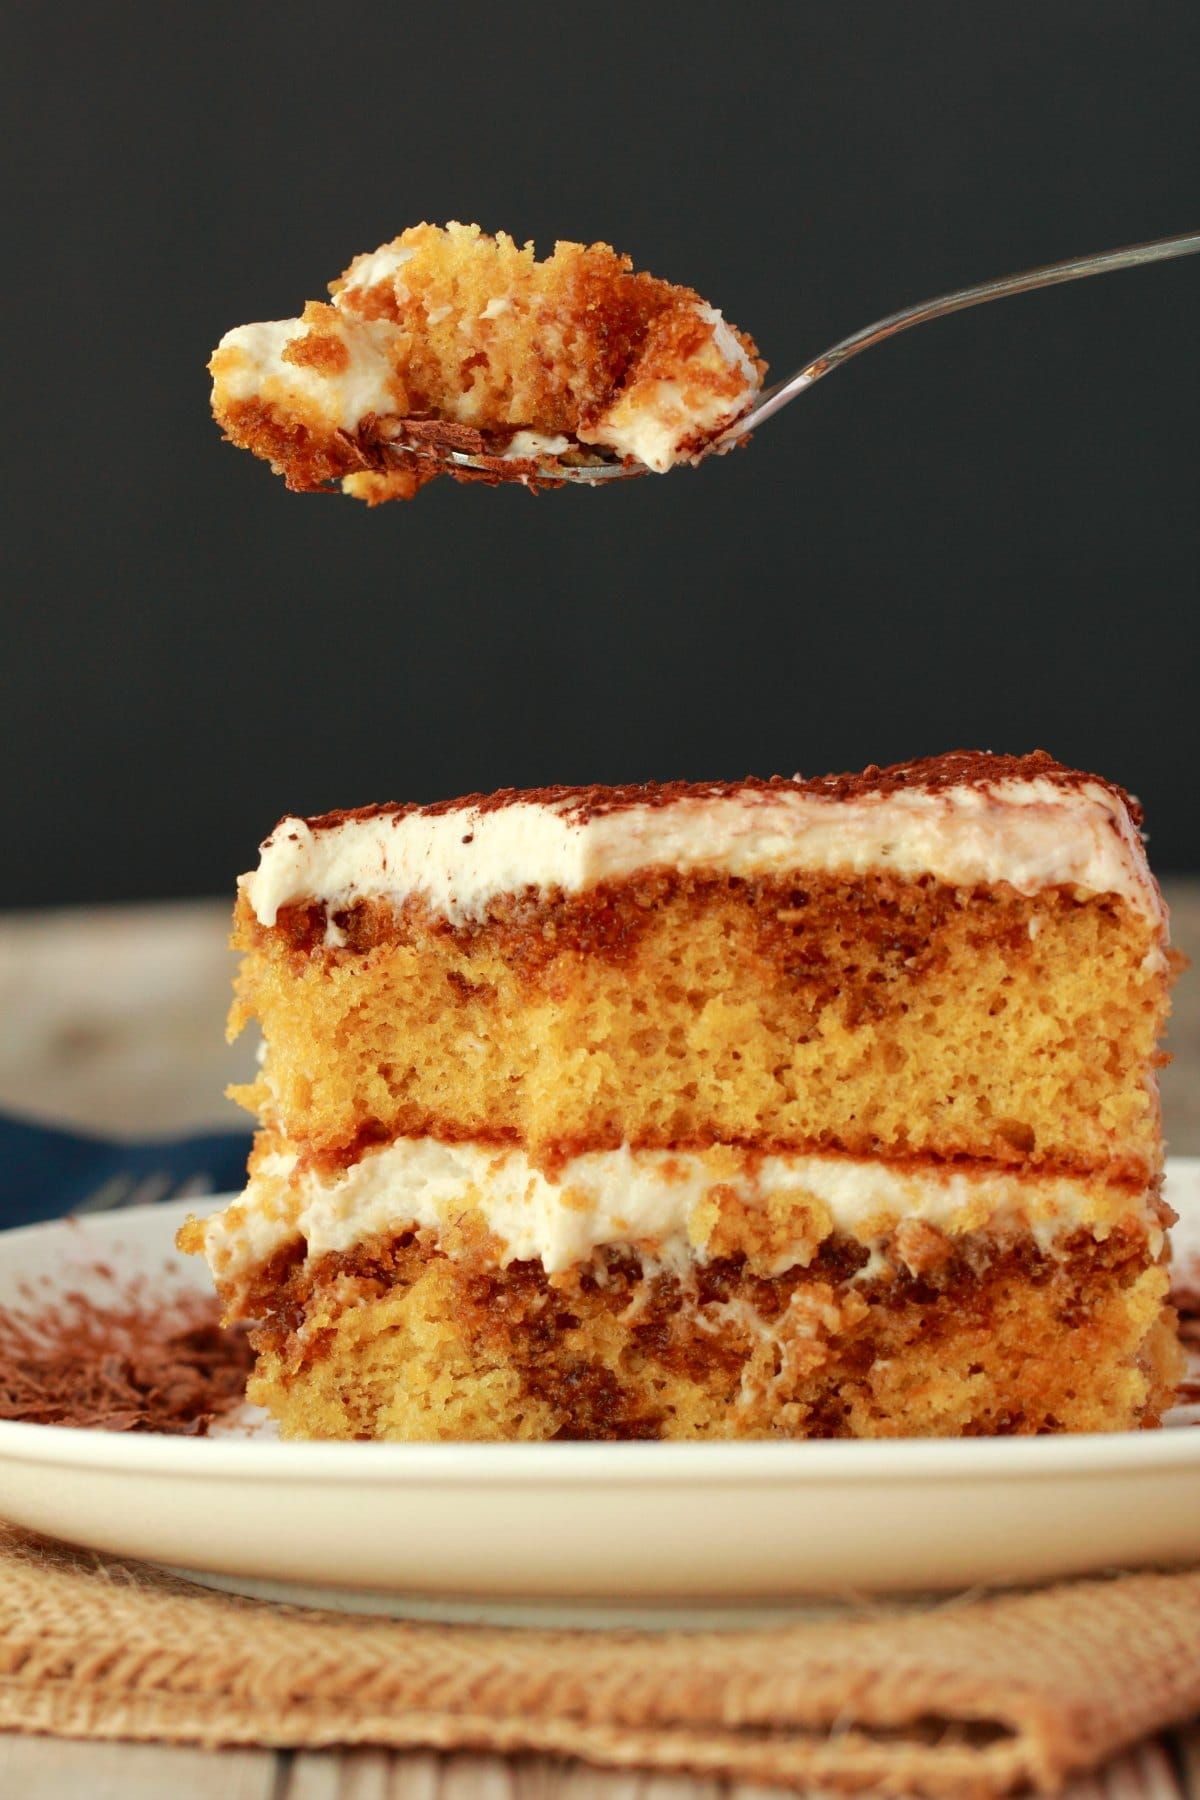 Mind Blowing Vegan Tiramisu Layers Of Vanilla Sponge Cake Soaked In Coffee And Liqueur And Layered With A Cashew M Vegan Tiramisu Vegan Cake Recipes Desserts